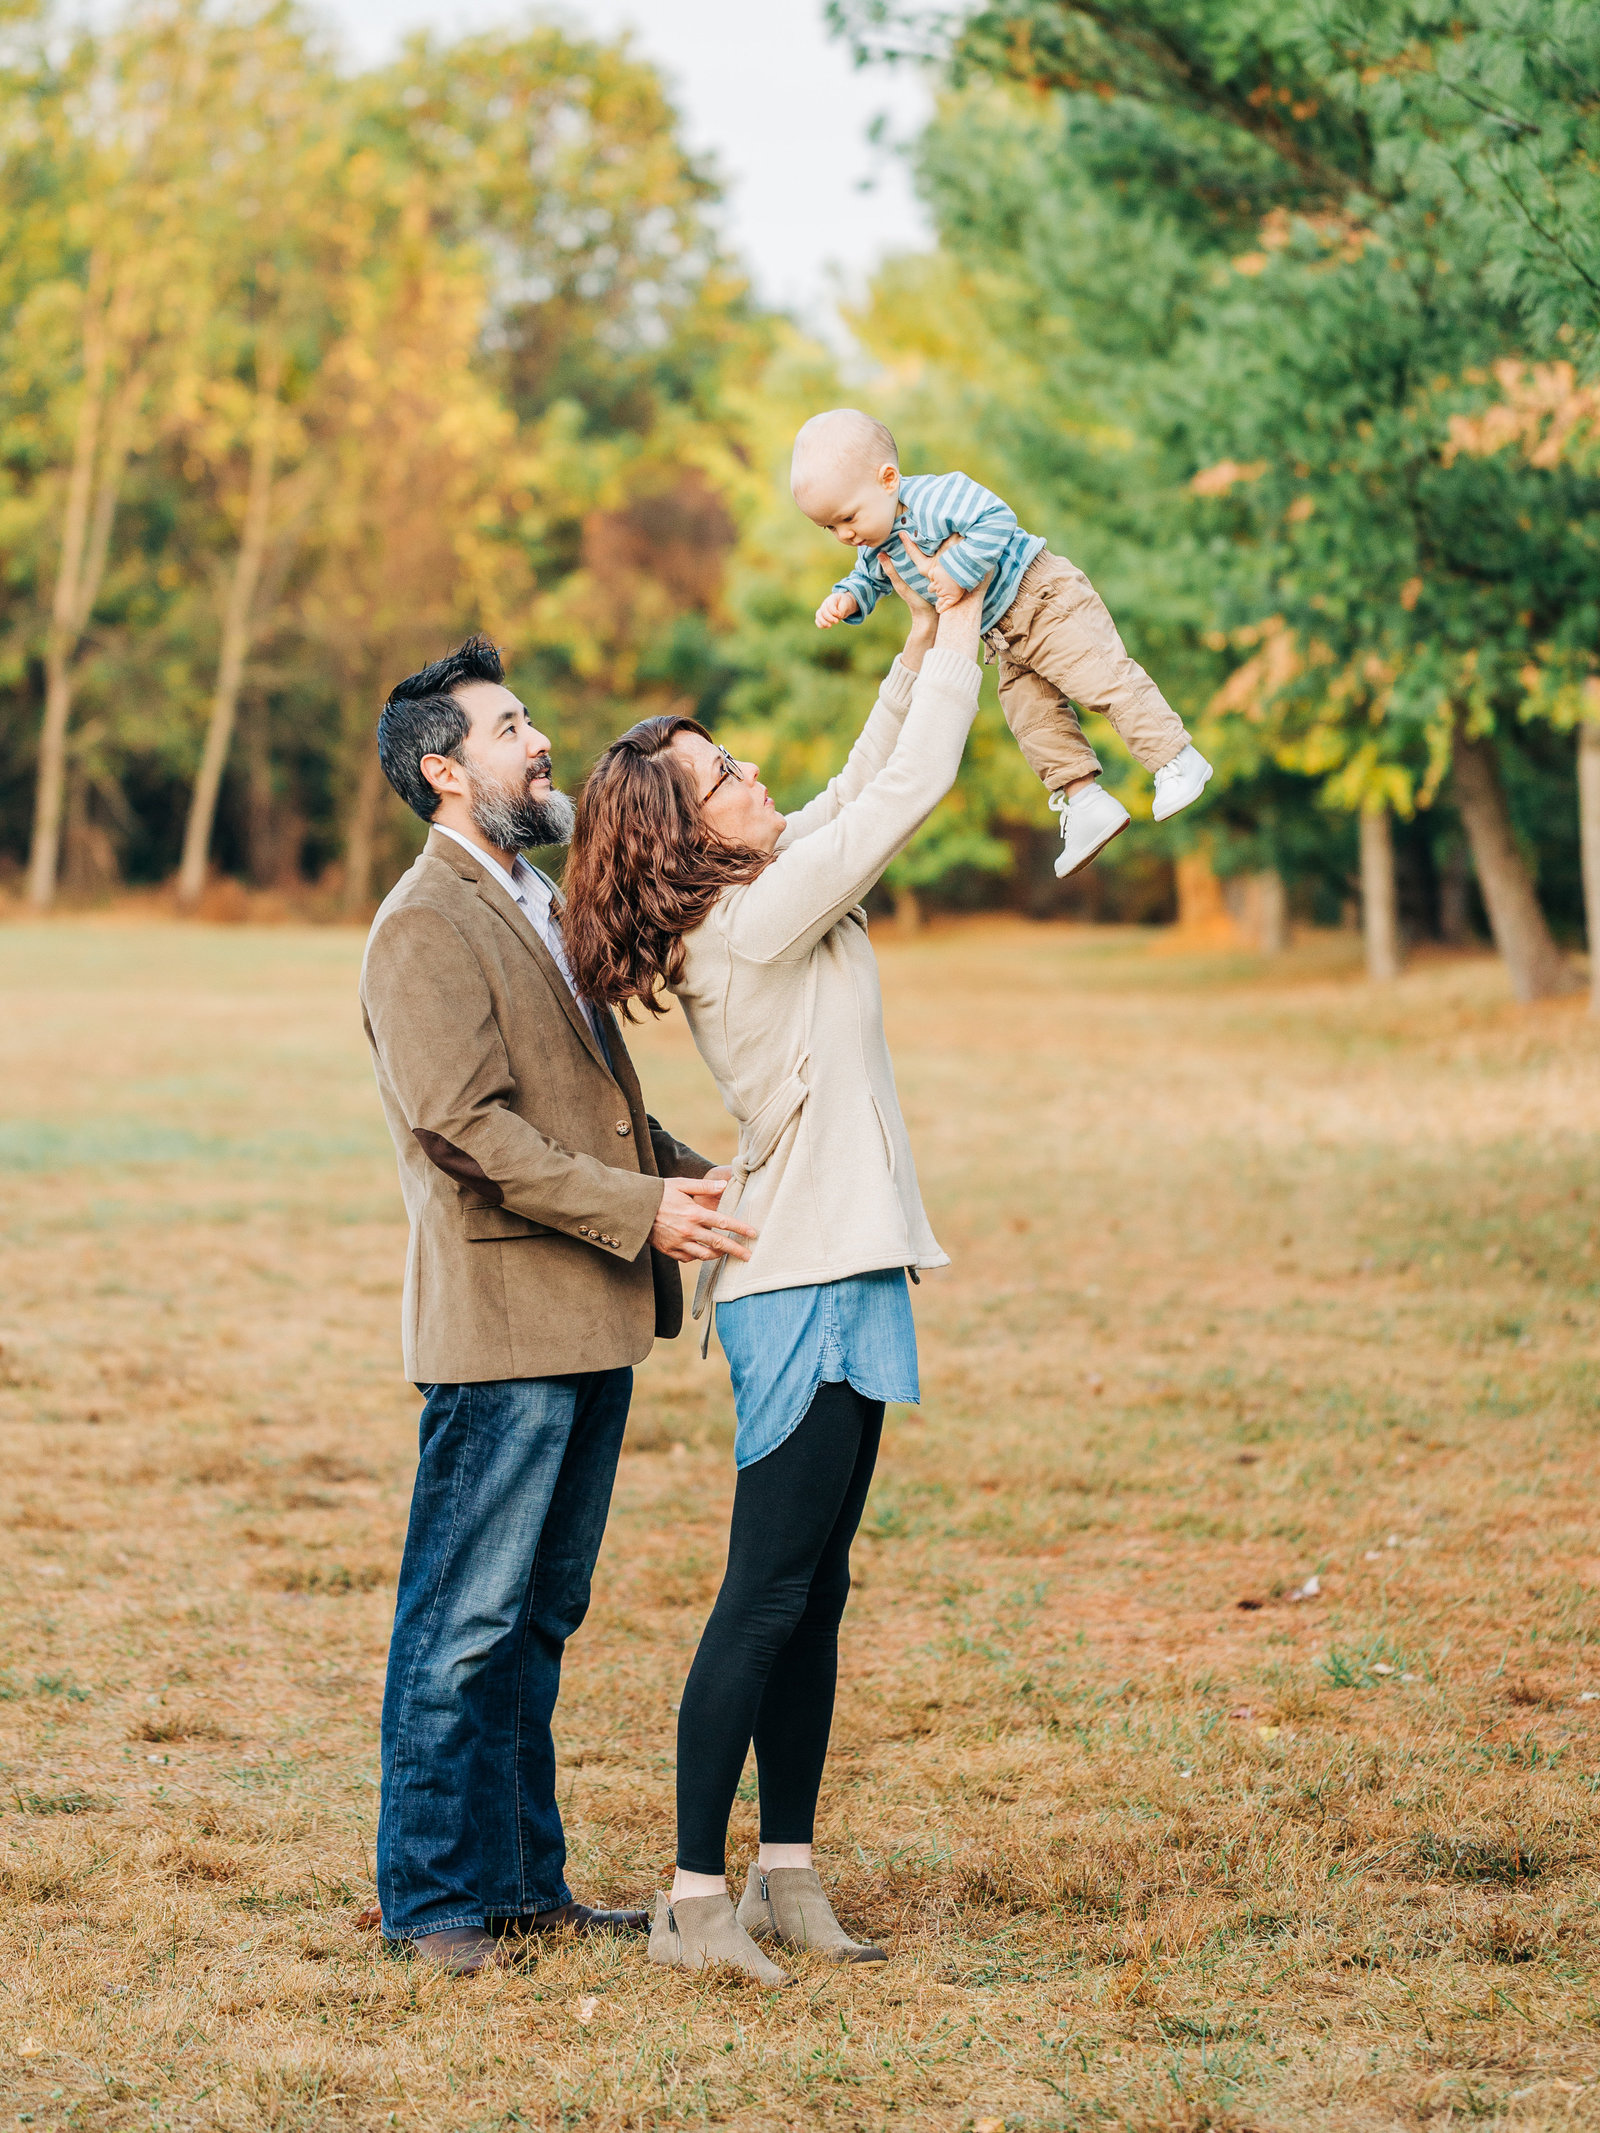 Mother lifts up her baby in the air with fall trees in the background while her husband holds her close